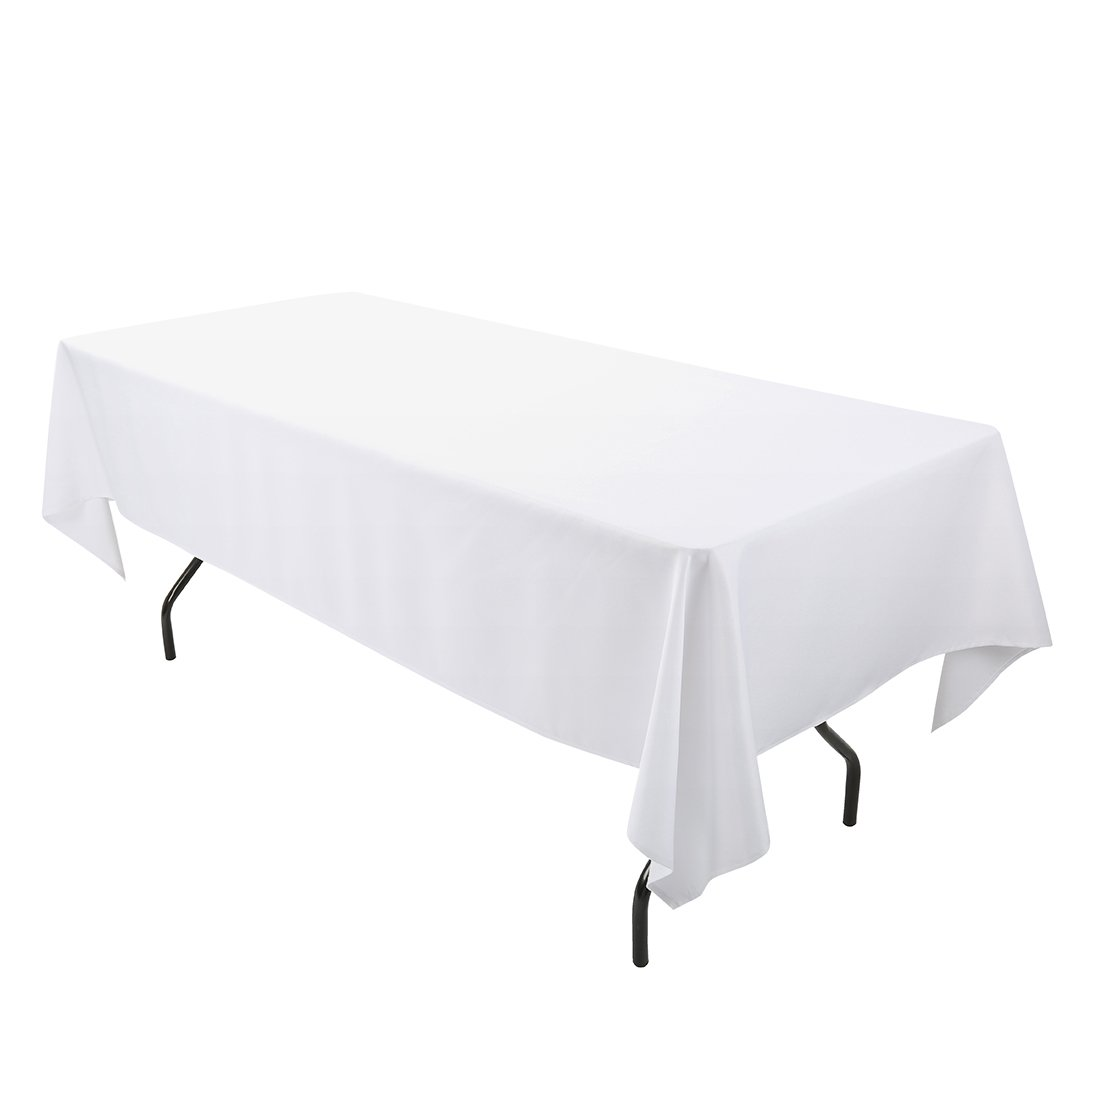 E-TEX 60 x 102-Inch Rectangular Tablecloth, 100% Polyester Washable Table Cloth for 6Ft. Rectangle Table, White by E-TEX